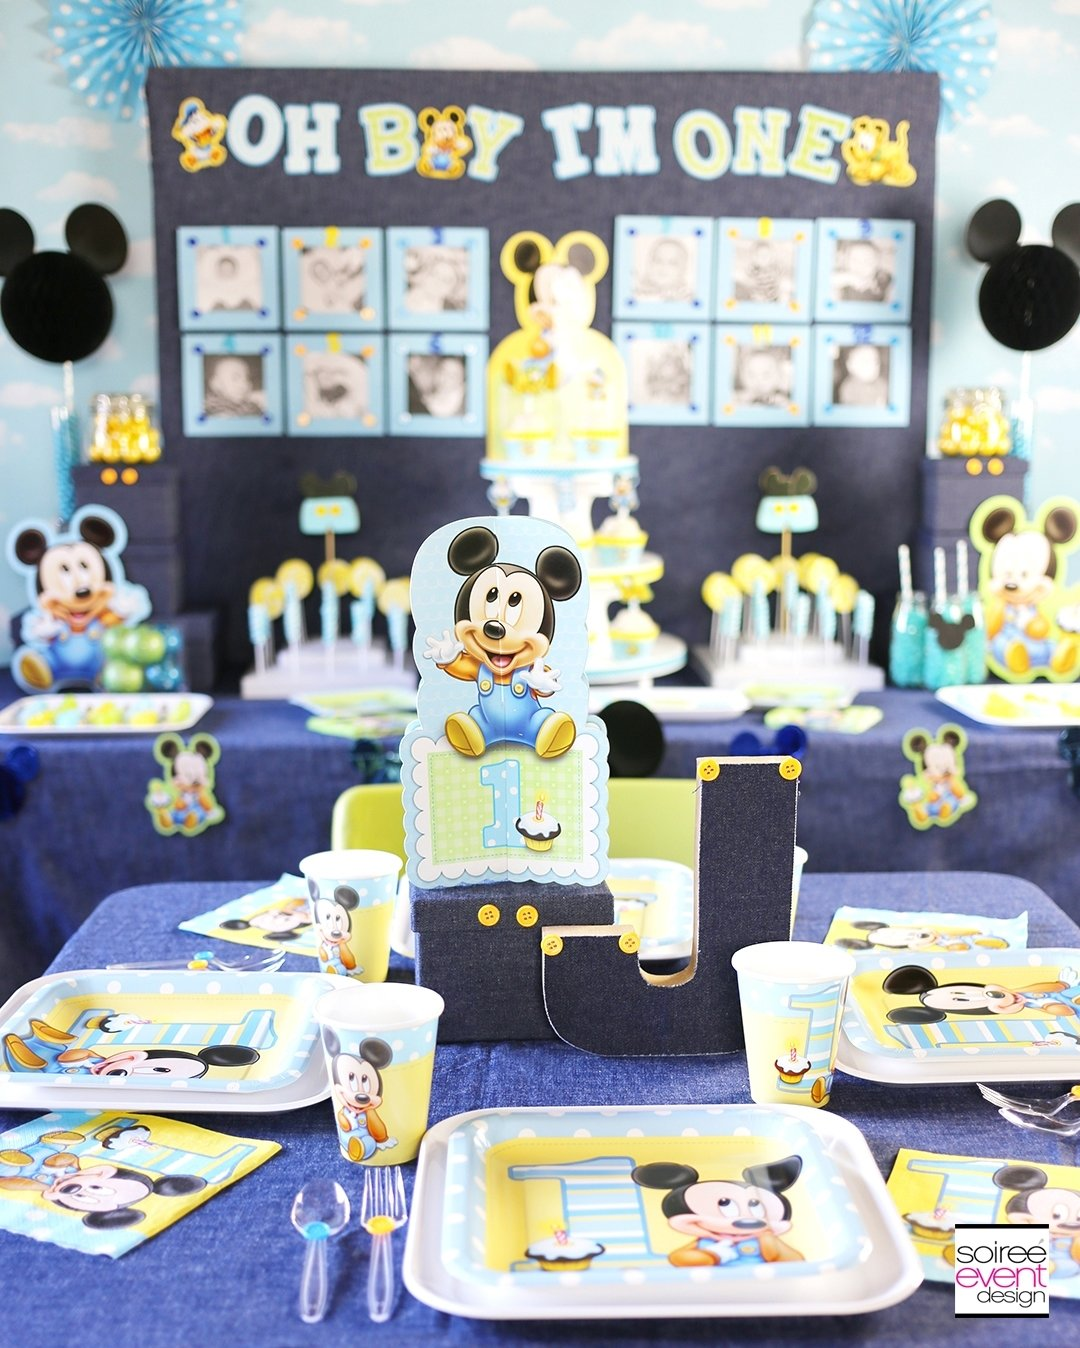 10 Lovely Mickey Mouse Bday Party Ideas mickey mouse first birthday party ideas soiree event design 2 2020